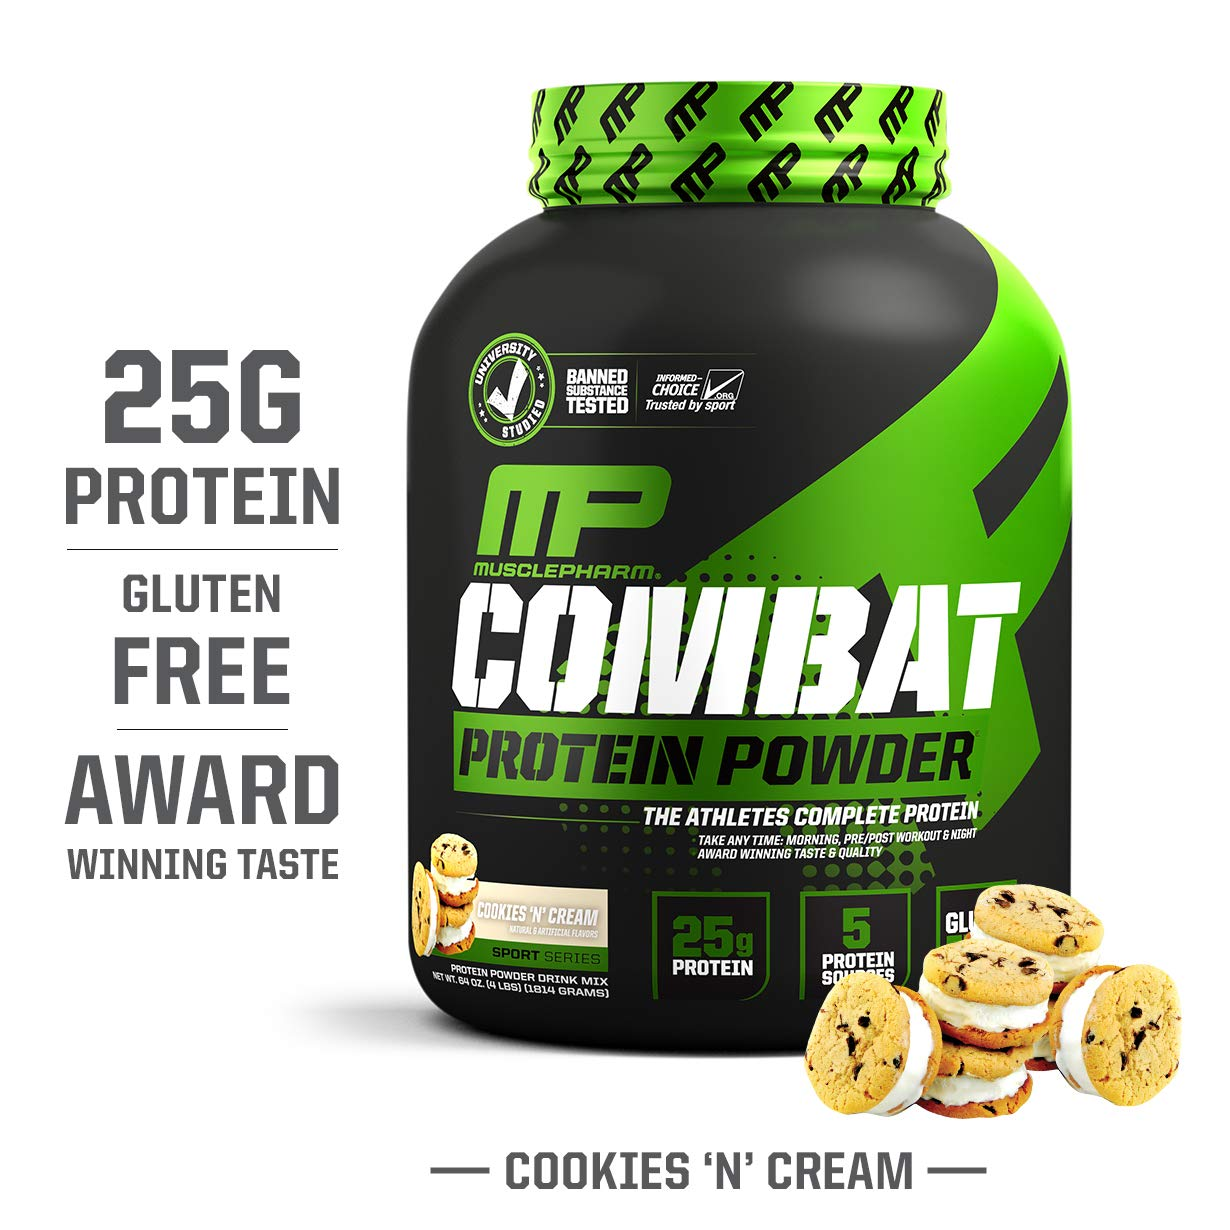 MusclePharm Combat Protein Powder, Essential Whey Protein Powder, Isolate Whey Protein, Casein and Egg Protein with BCAAs and Glutamine for Recovery, Cookies 'N' Cream, 4-Pound, 52 Servings by Muscle Pharm